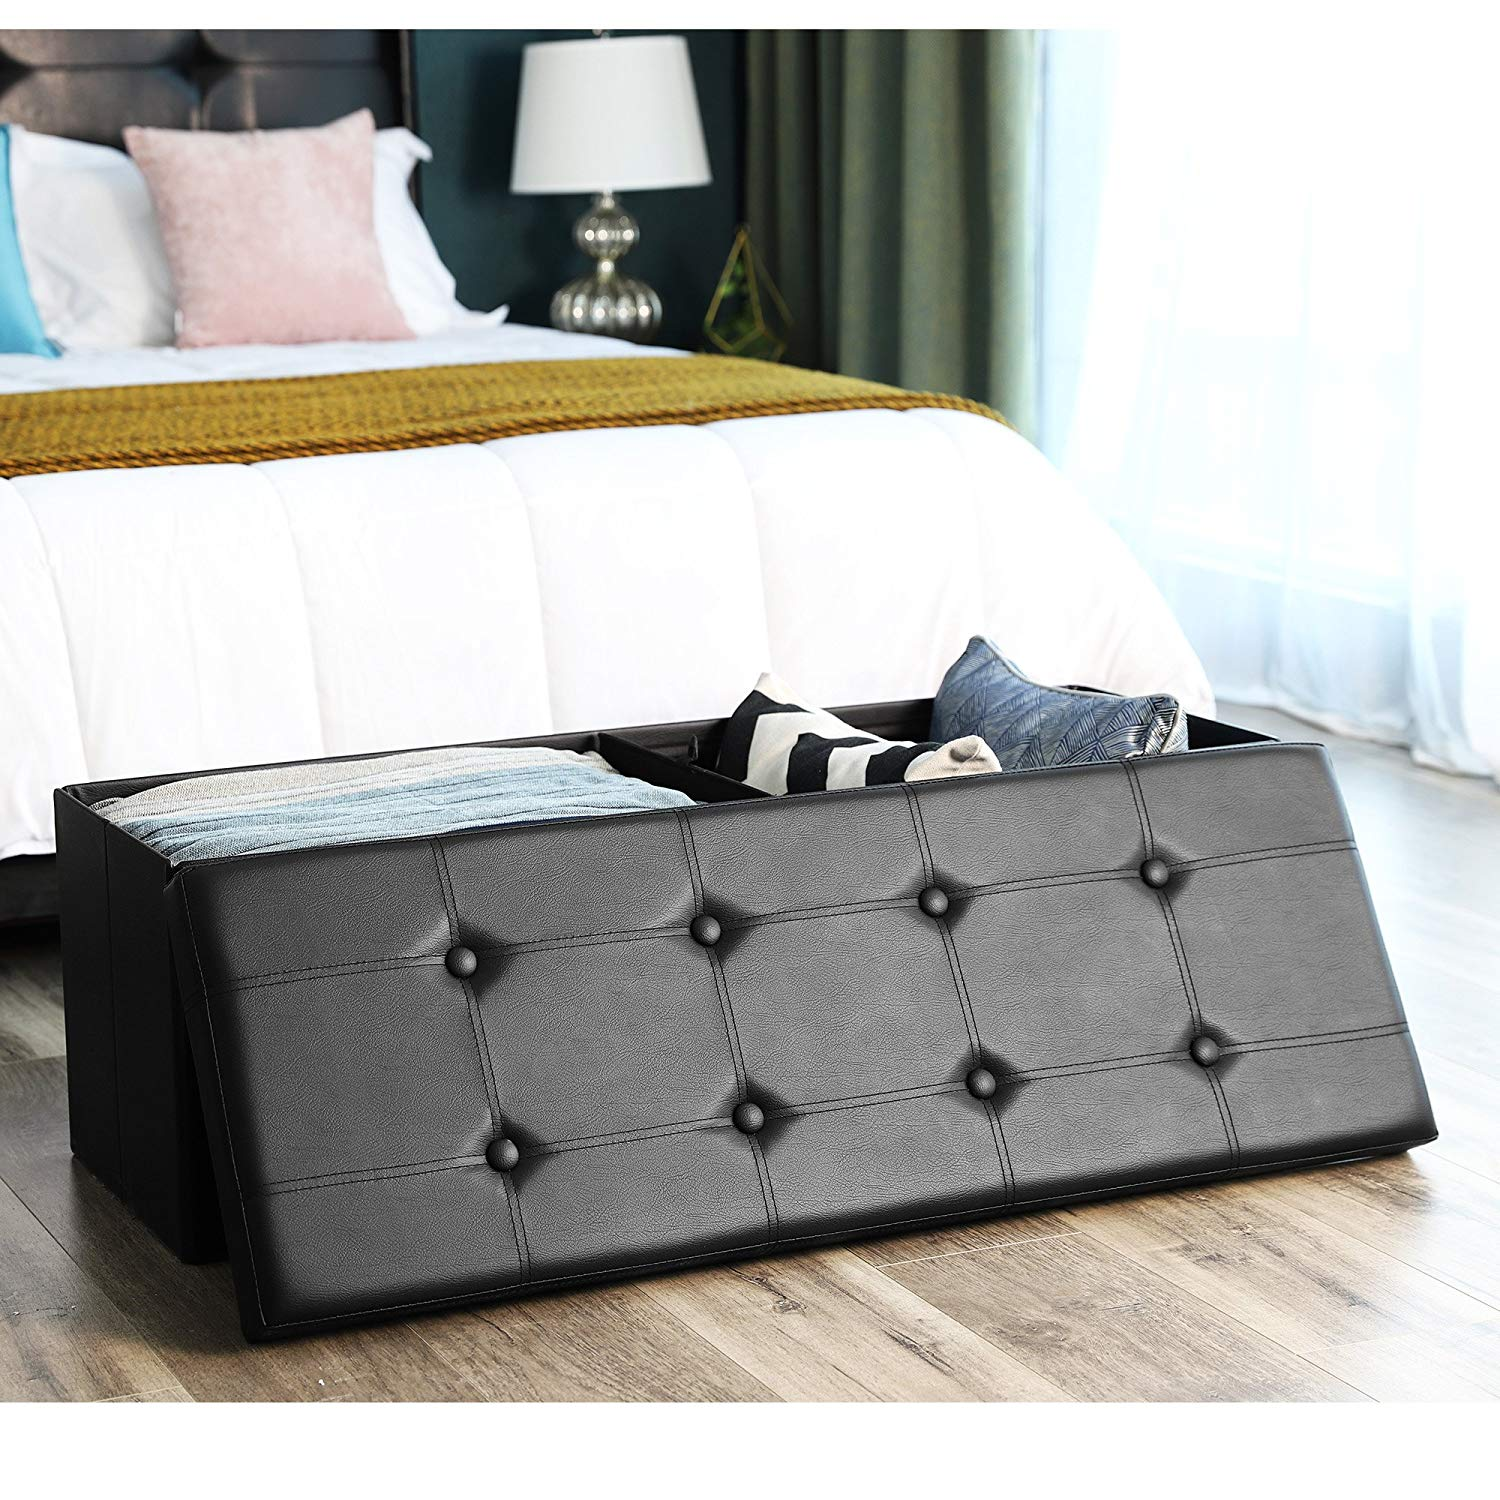 Superb Details About Large Folding Storage Bench Ottoman Organizer Furniture For Bedroom Living Room Inzonedesignstudio Interior Chair Design Inzonedesignstudiocom